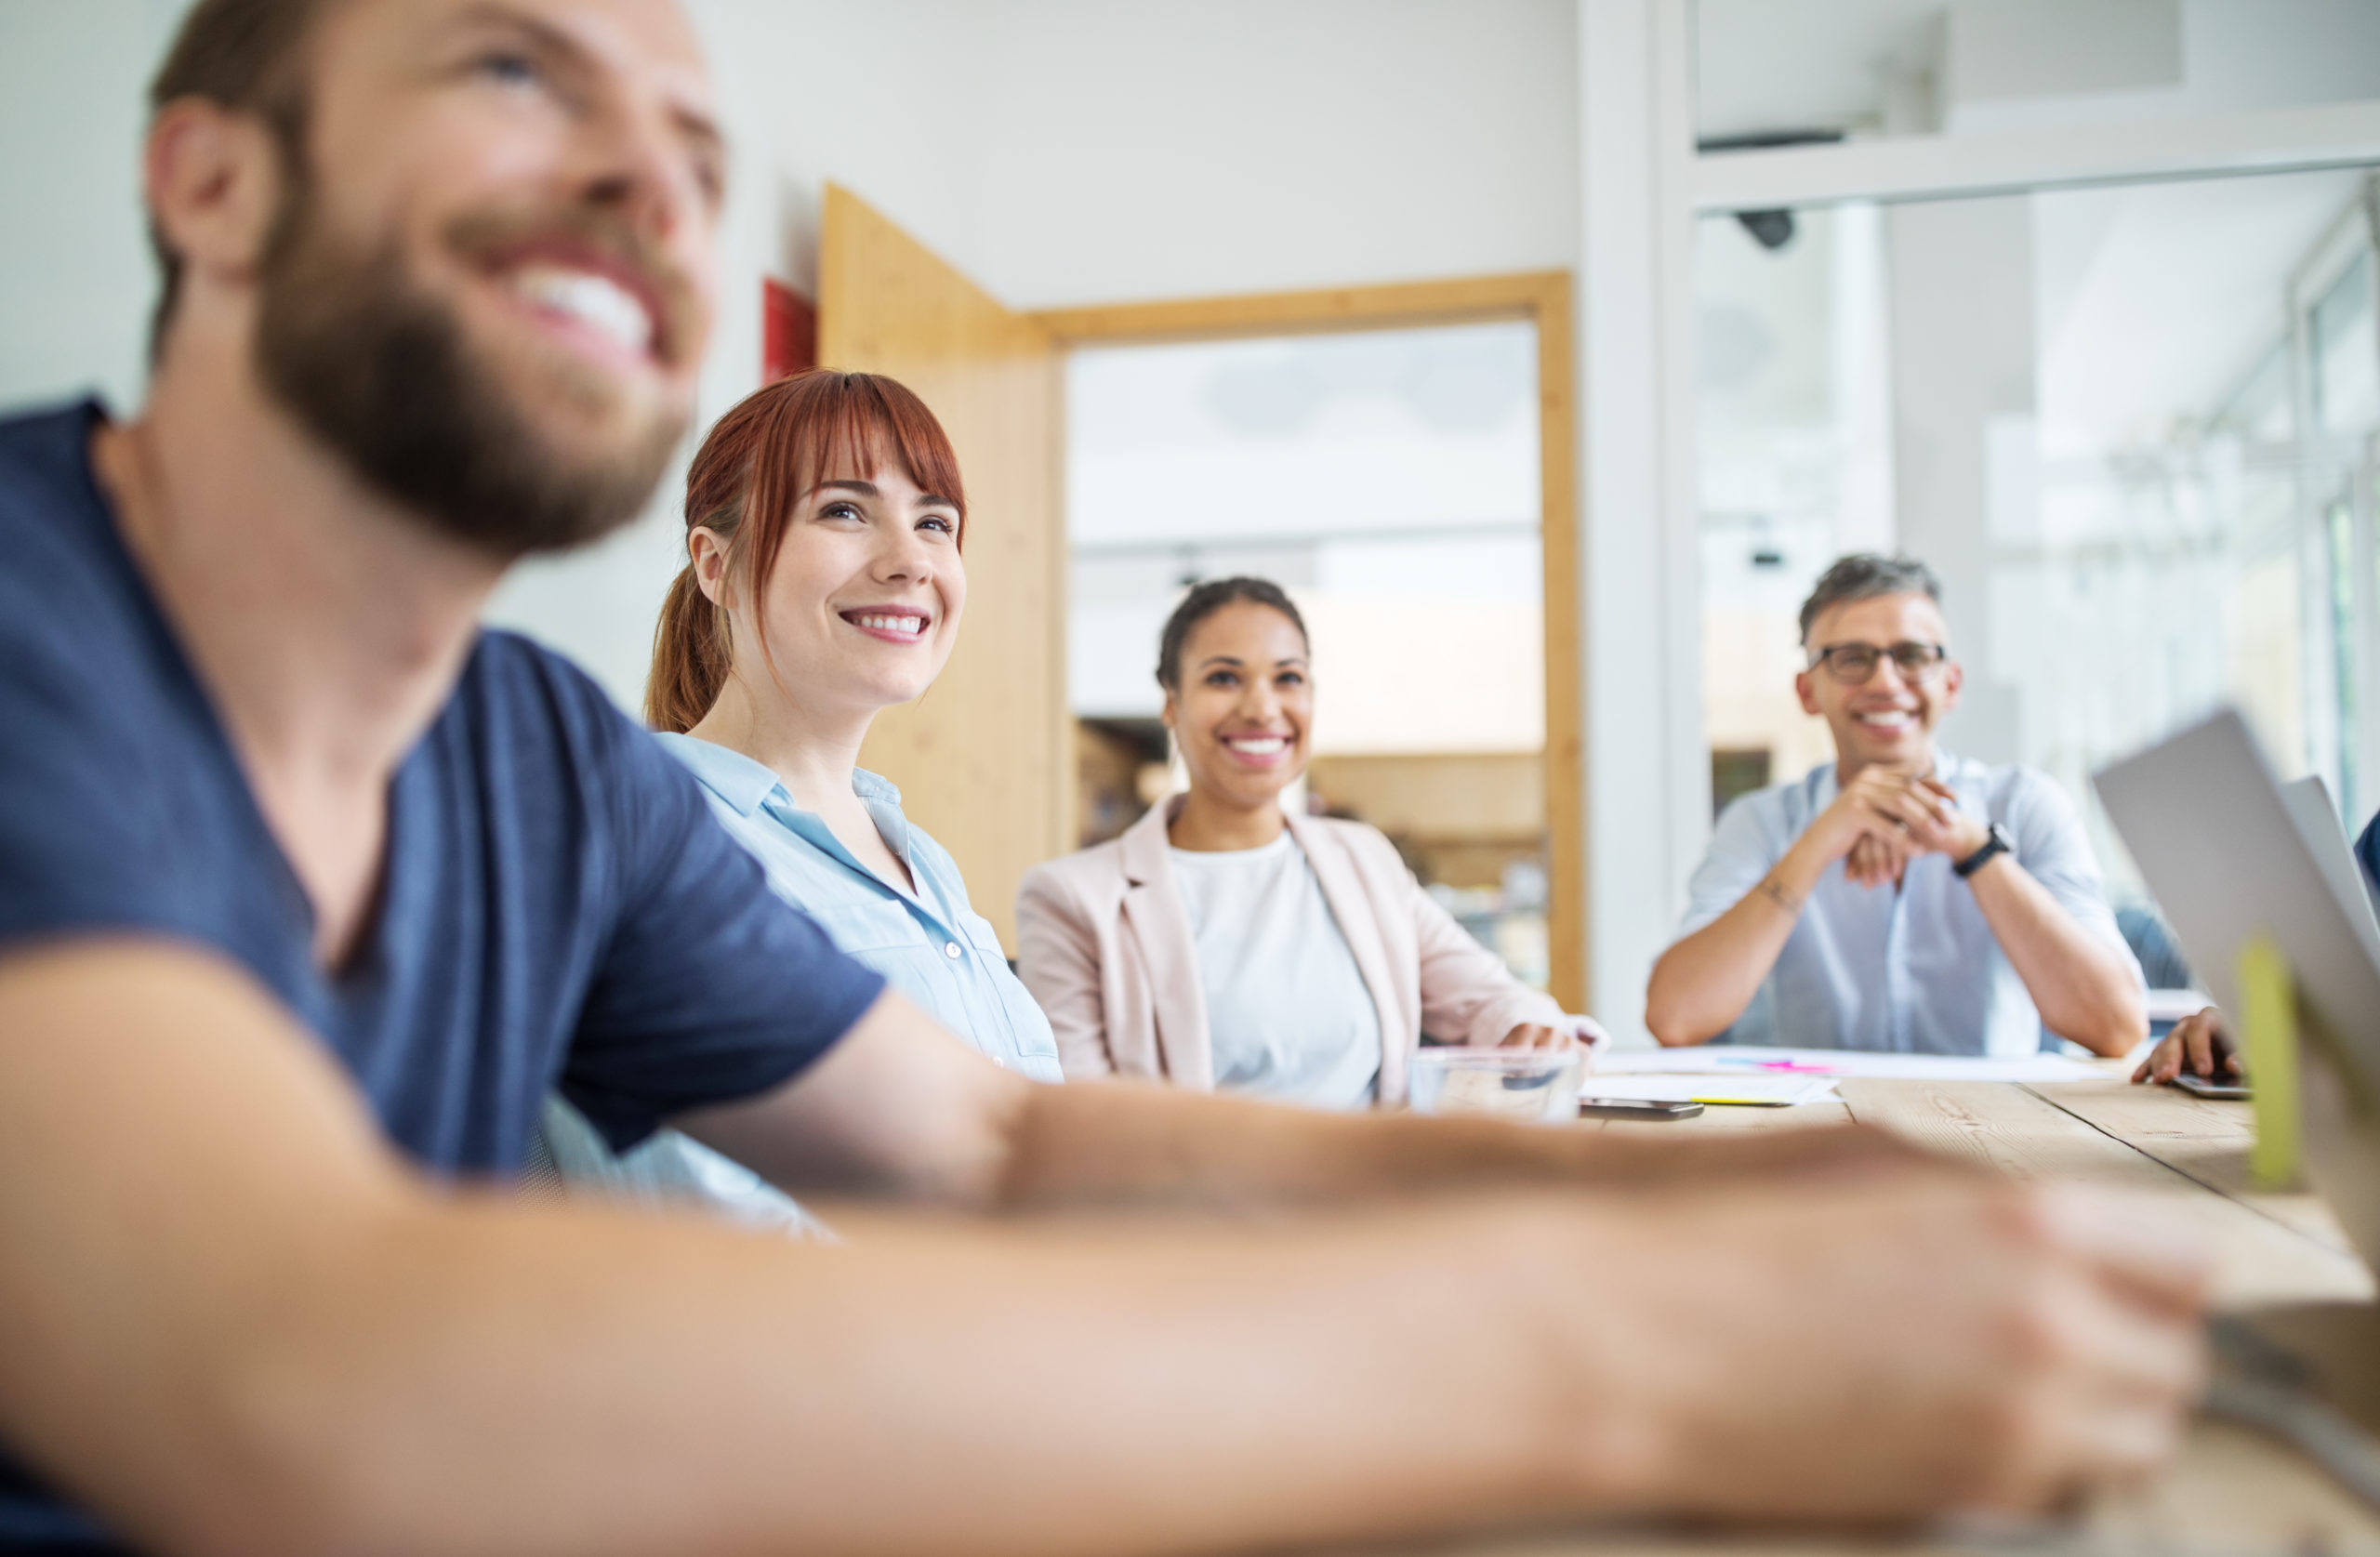 Four employees in an office meeting. They are all smiling and listening to someone talk.